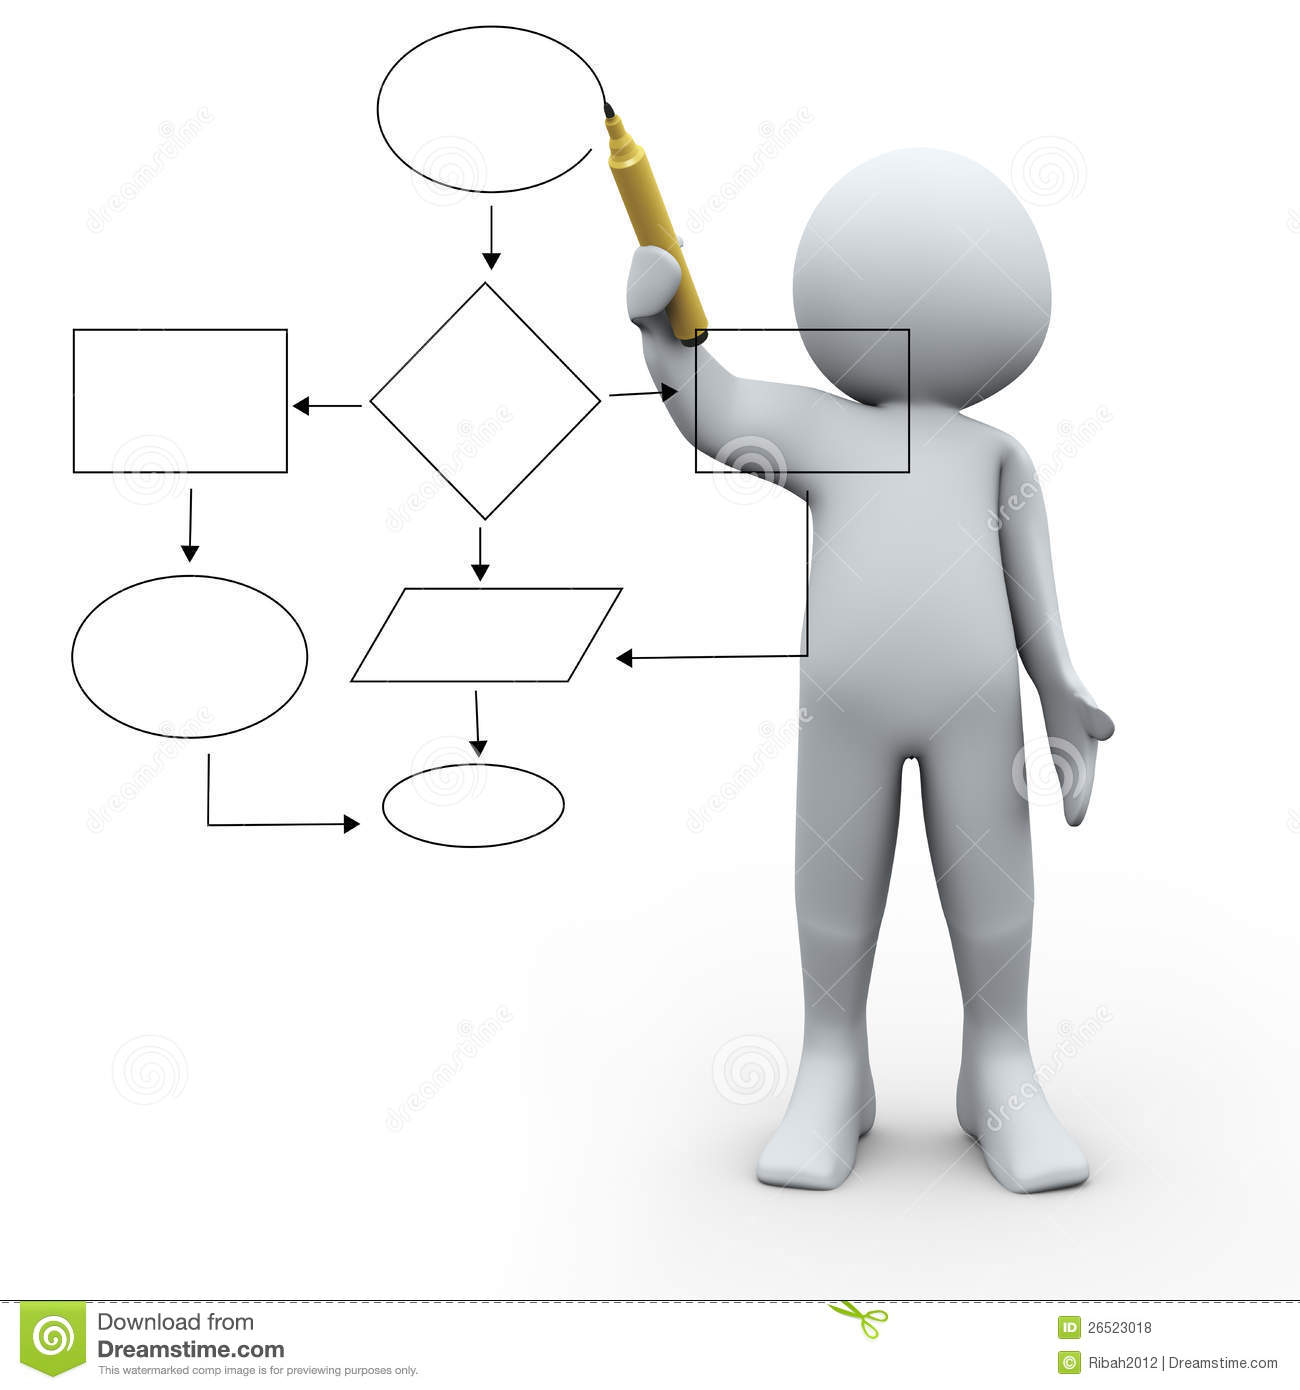 Royalty Free Stock Photos 3d Person Flow Chart Image26523018